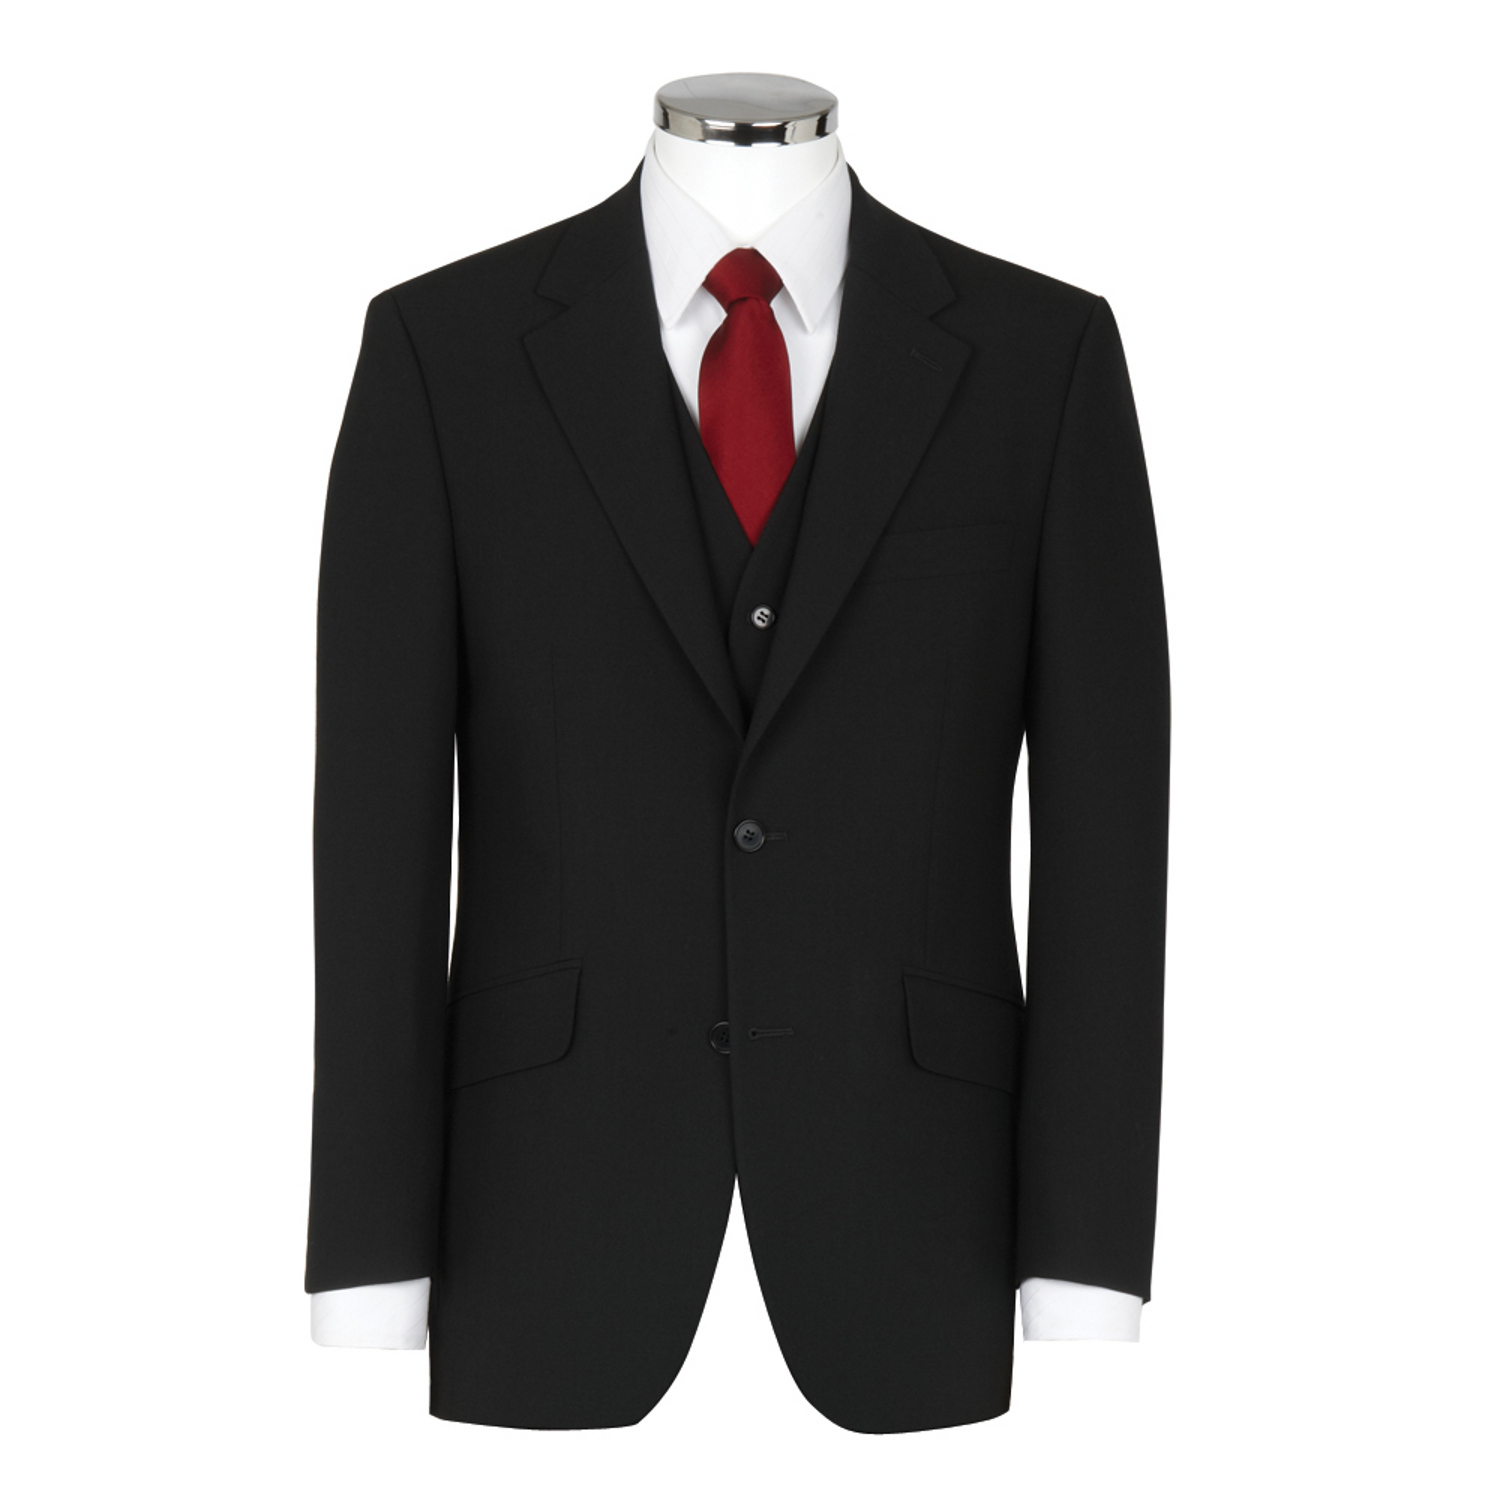 3 Piece Wool Mix Black Suit